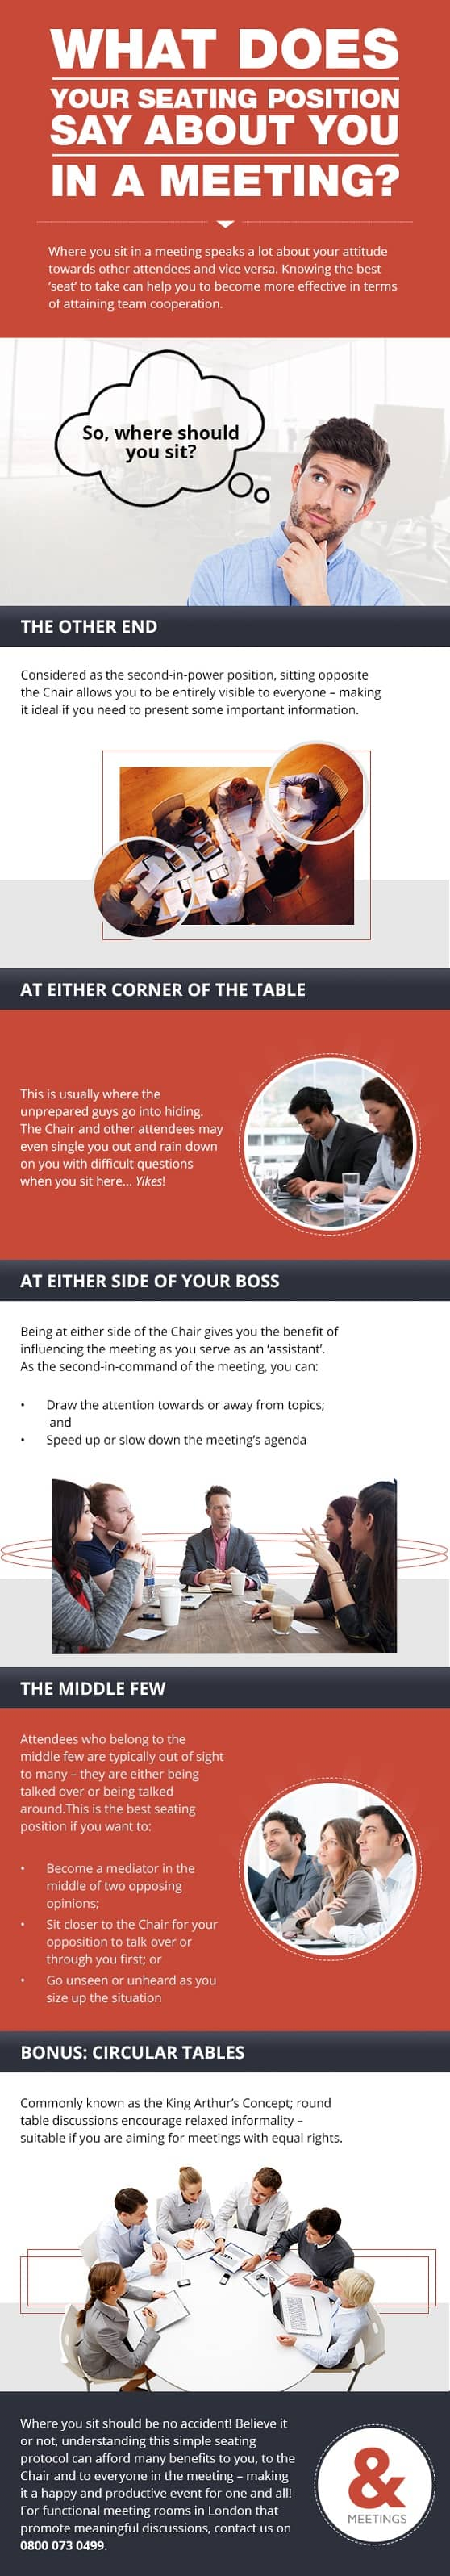 What Does Your Seating Position say About you in a Meeting?